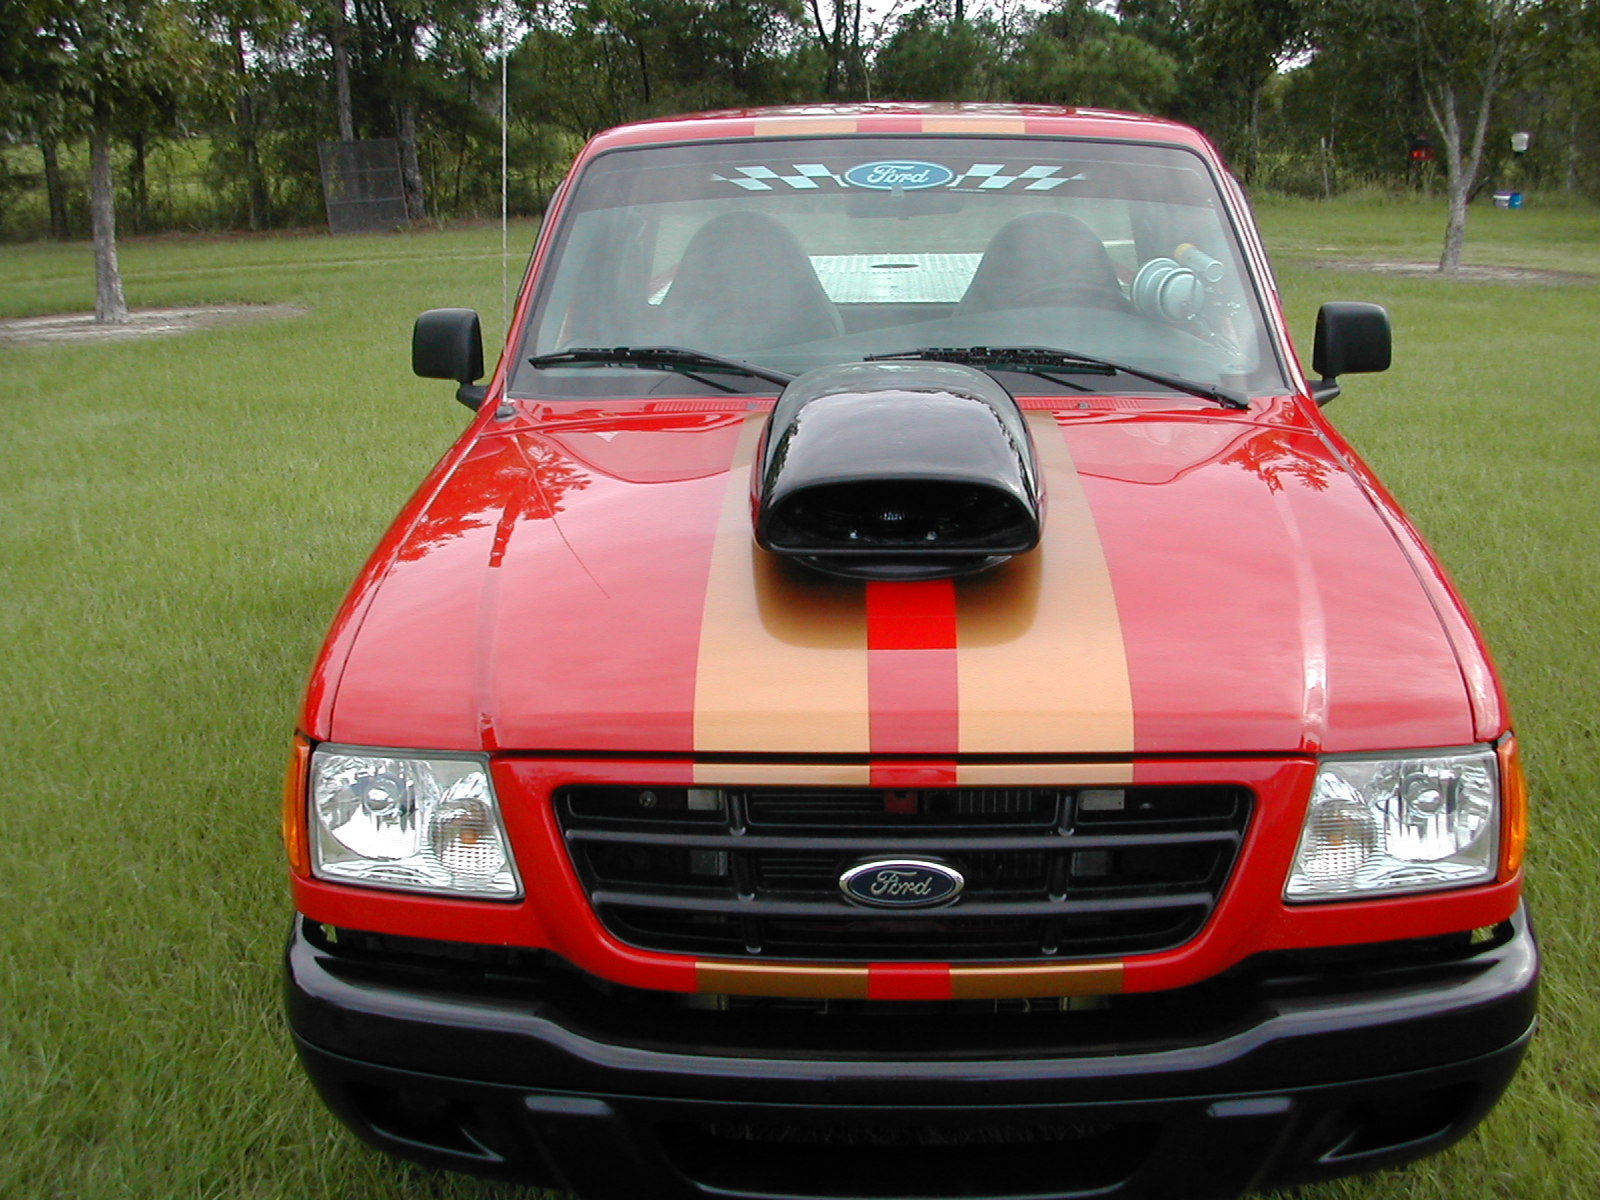 2001 V8 Ford Ranger Gt Gt For Sale Classified Ads Buy And